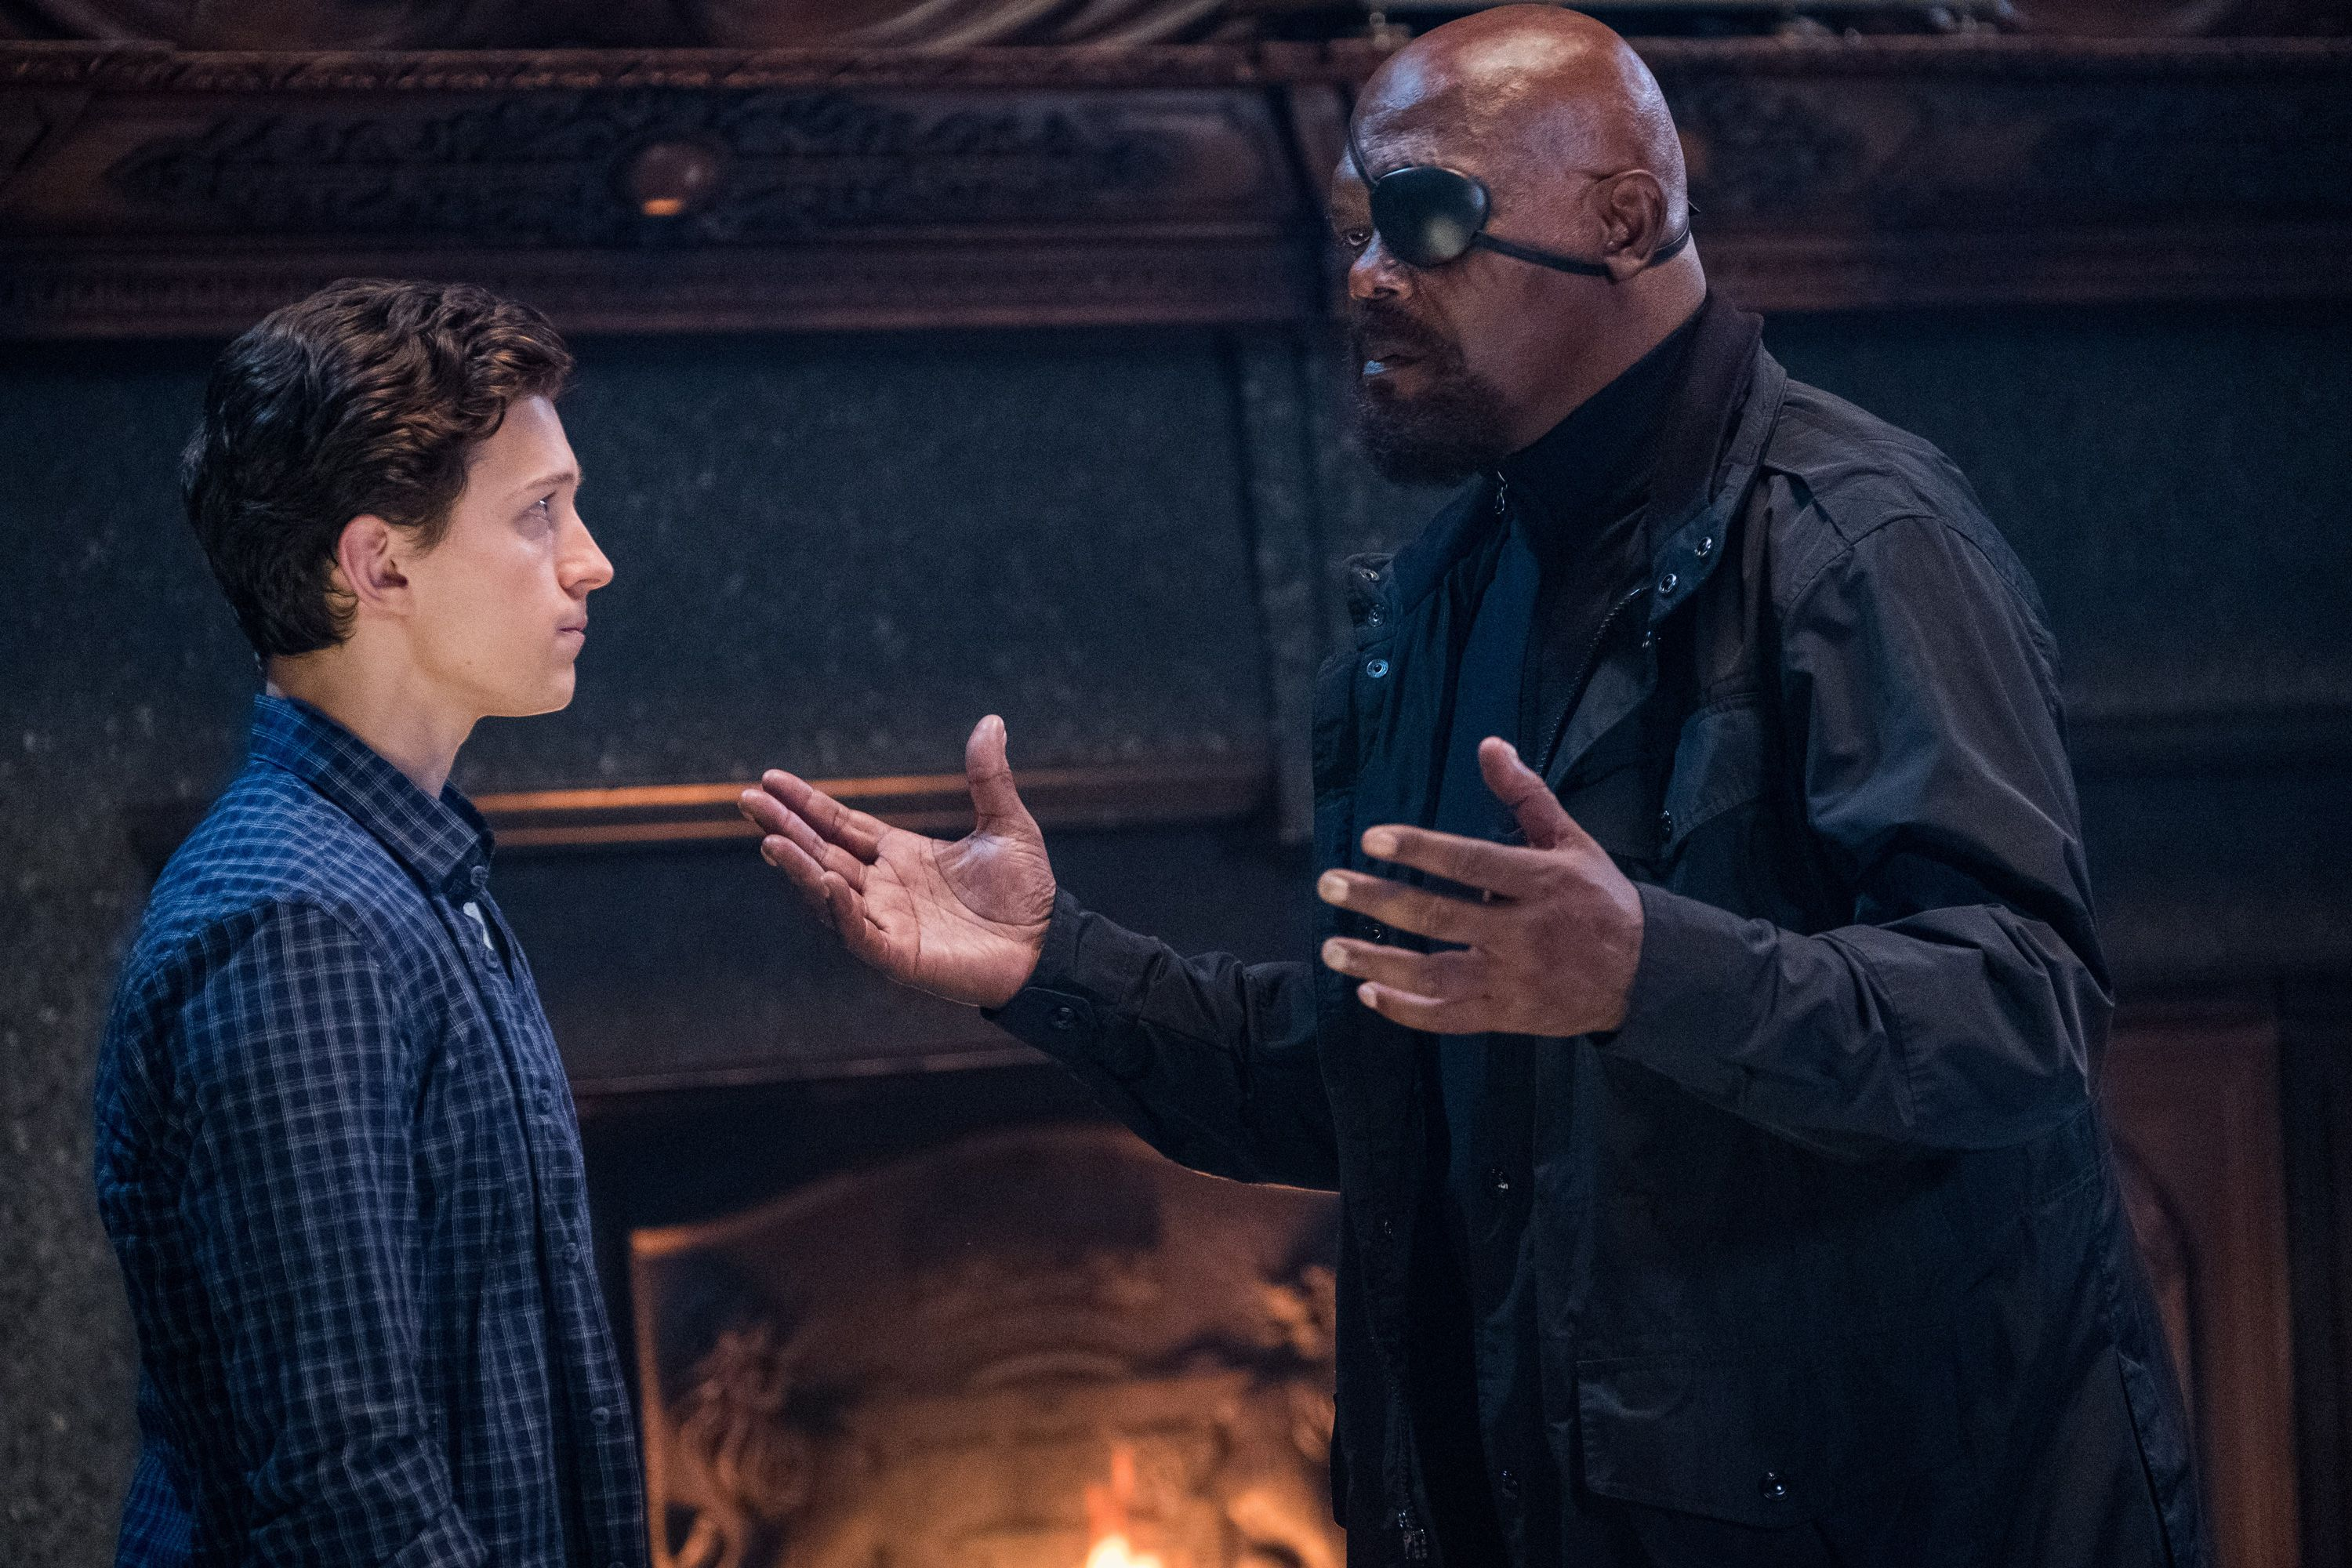 Spider-Man: Far From Home director clears up Nick Fury reveal